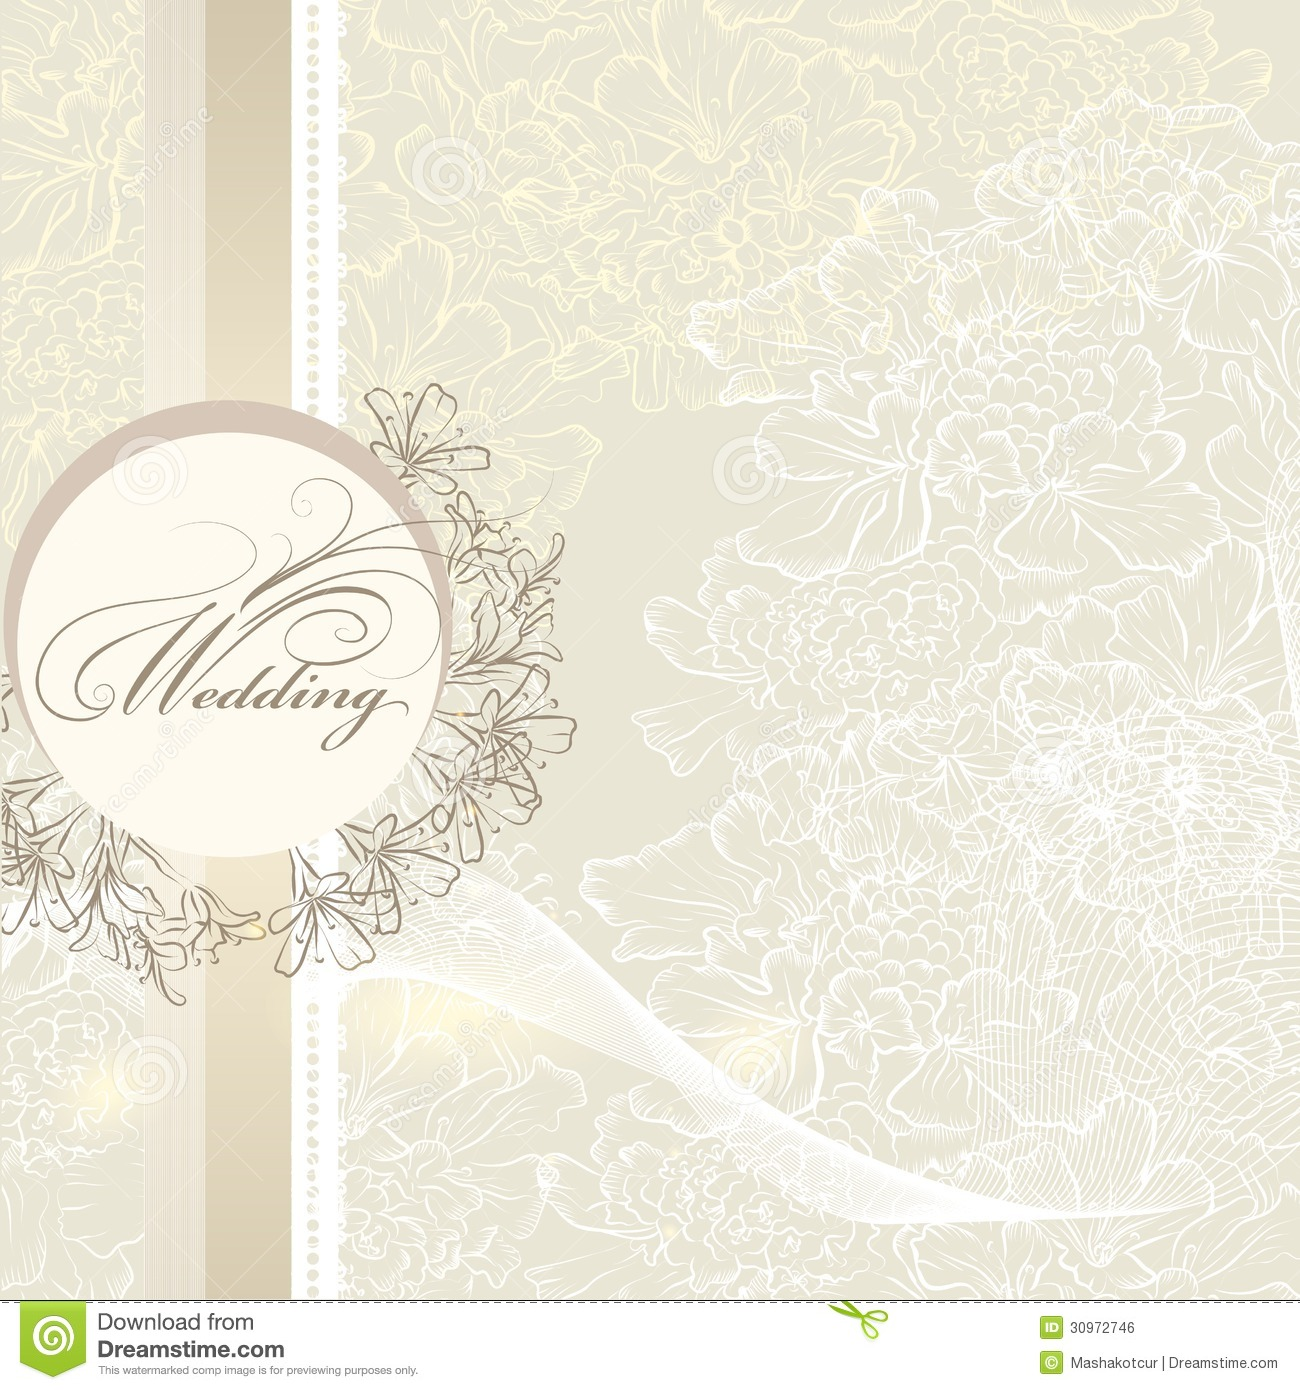 Design House Plans Online India Elegant Wedding Invitation Card With Banner And Flowers